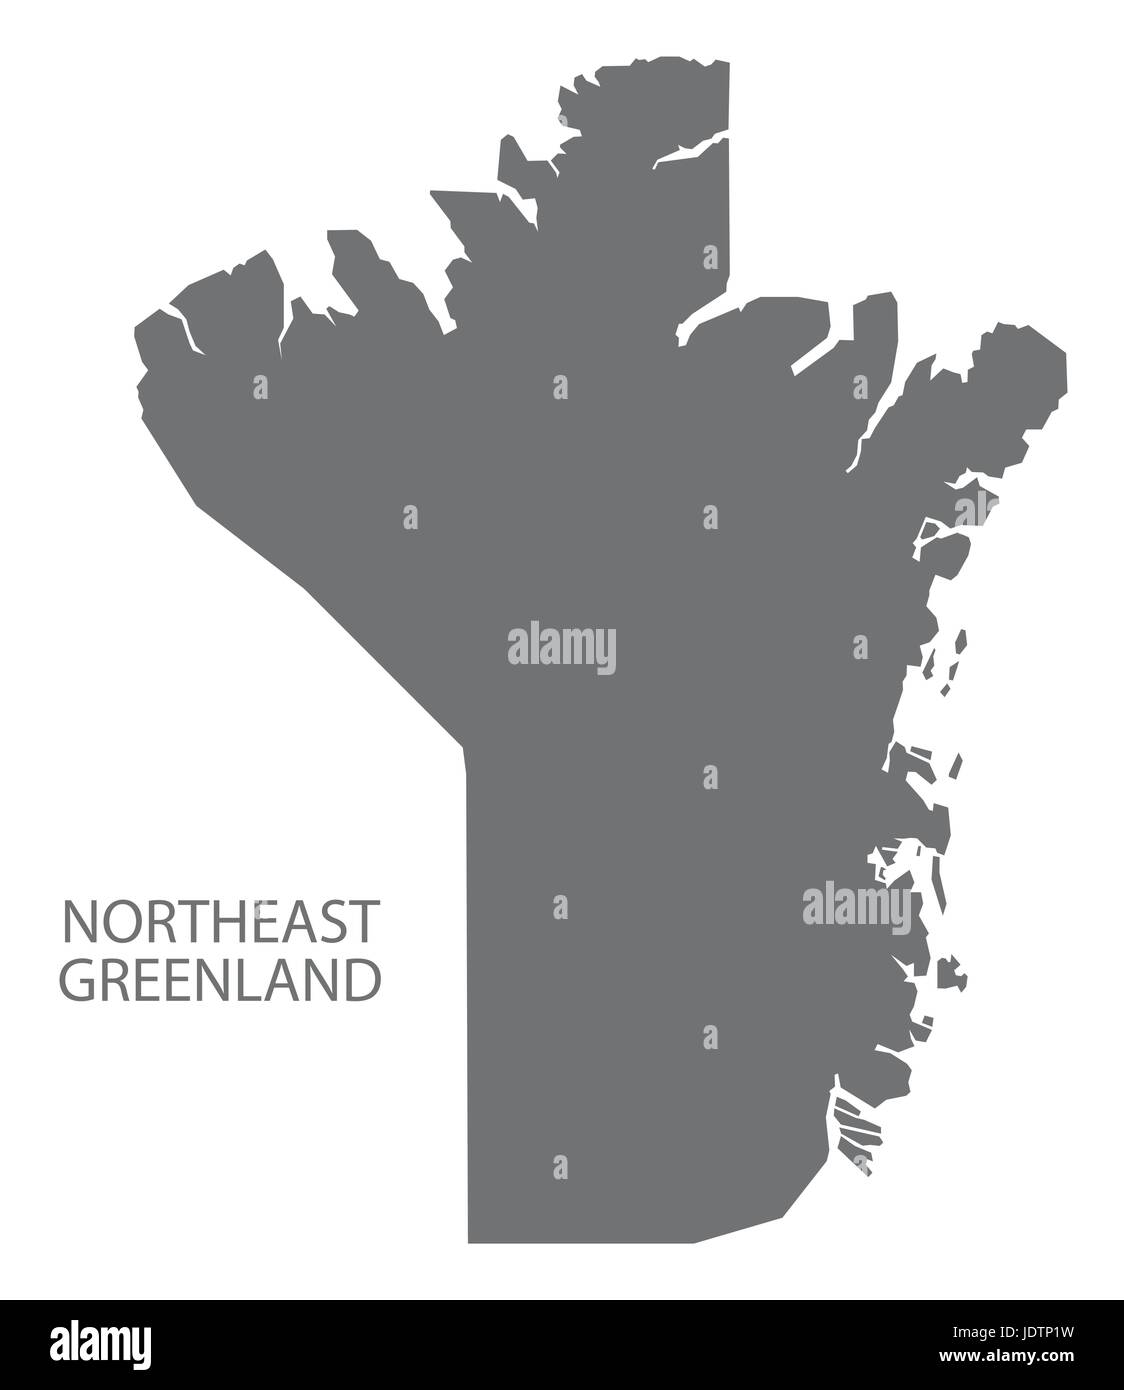 Northeast Greenland map grey illustration silhouette - Stock Vector